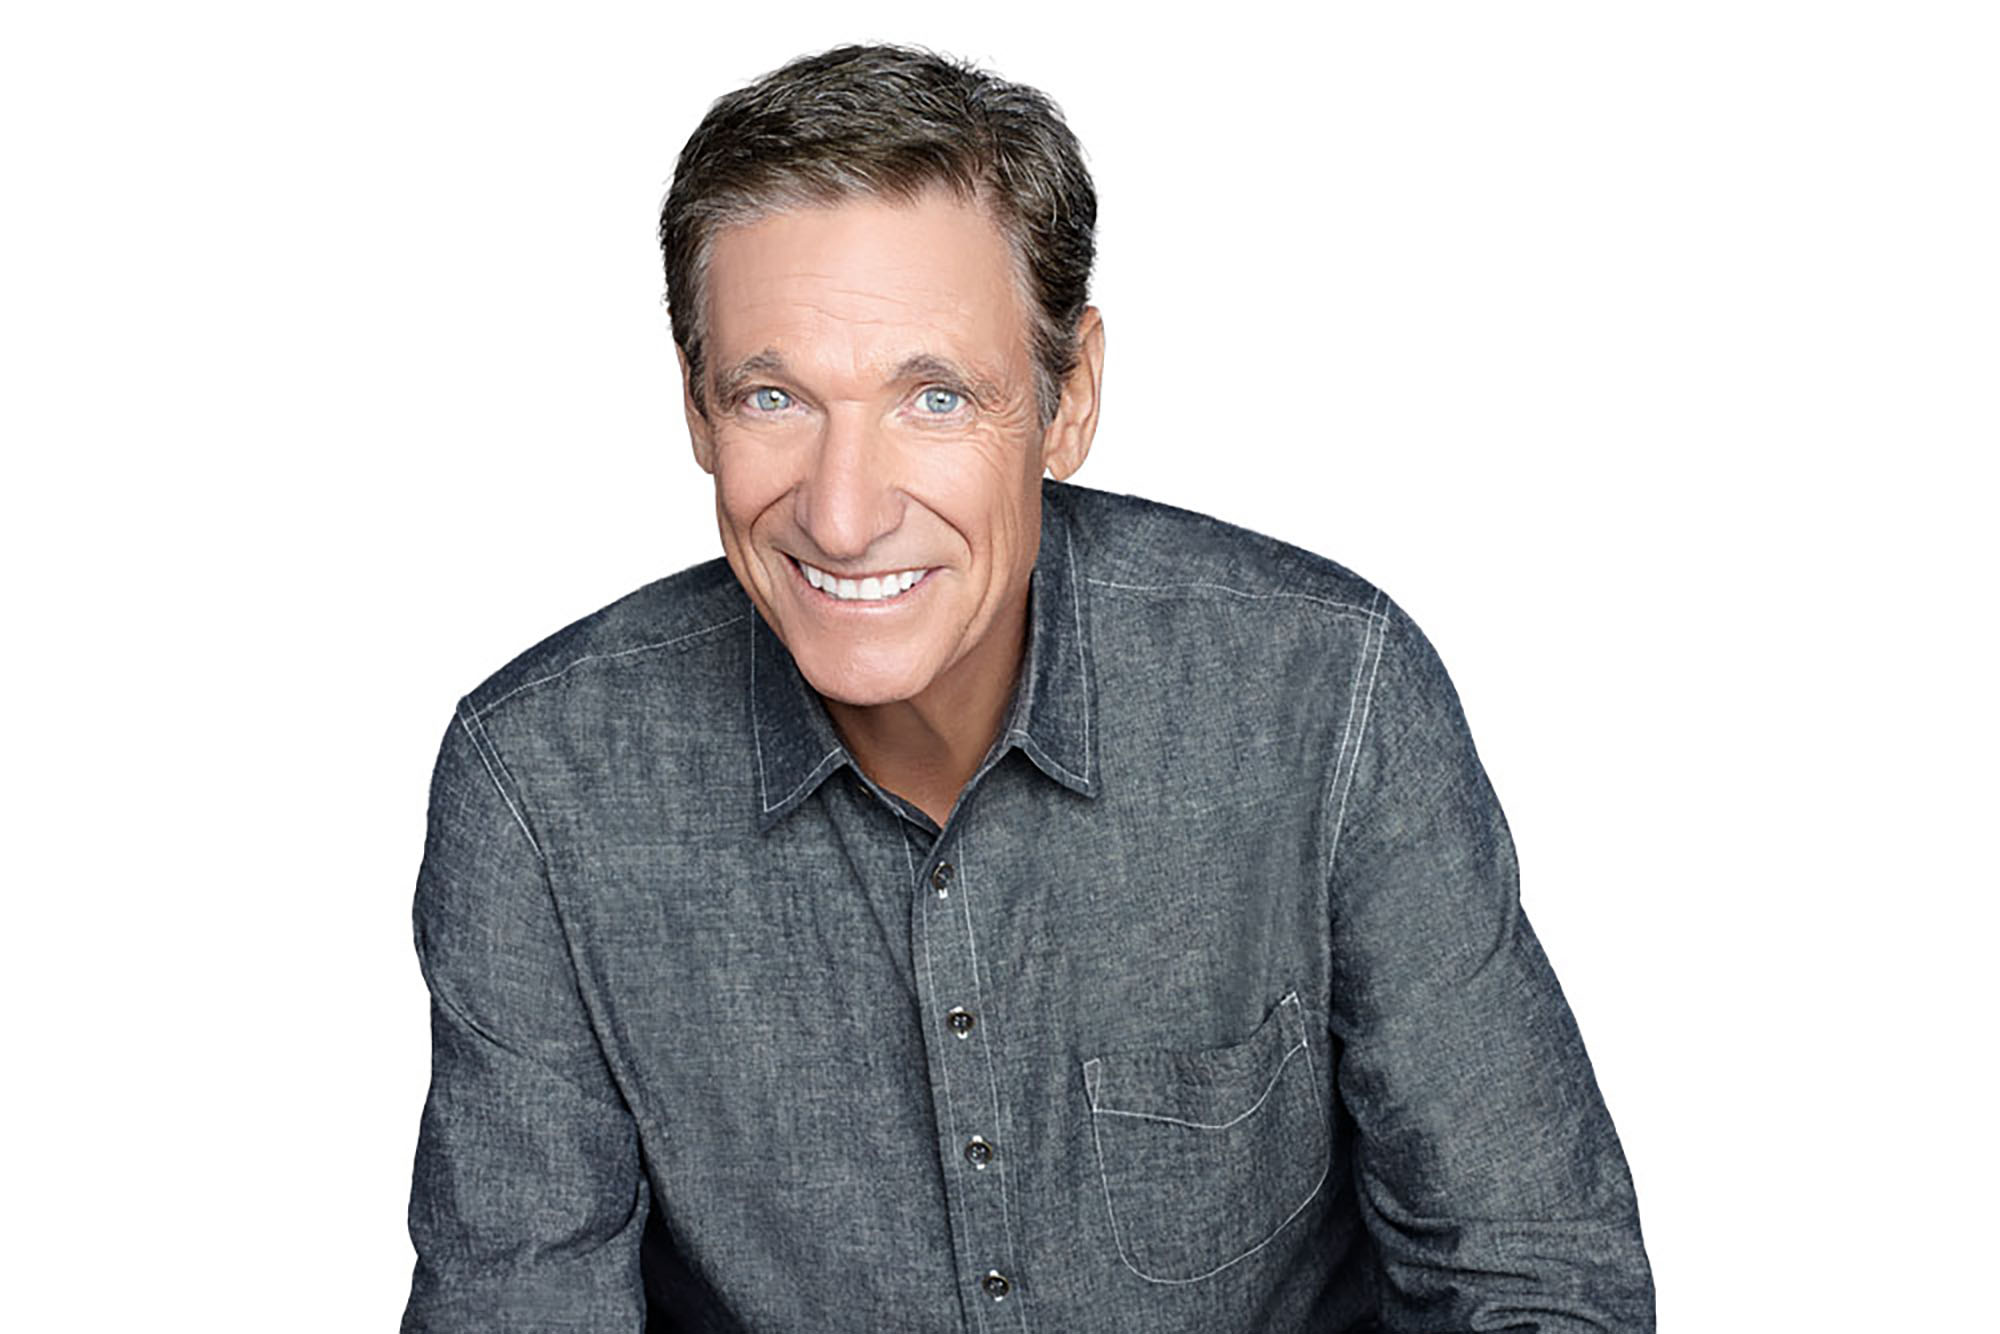 Maury Povich says his show has 'classic Shakespearean' elements